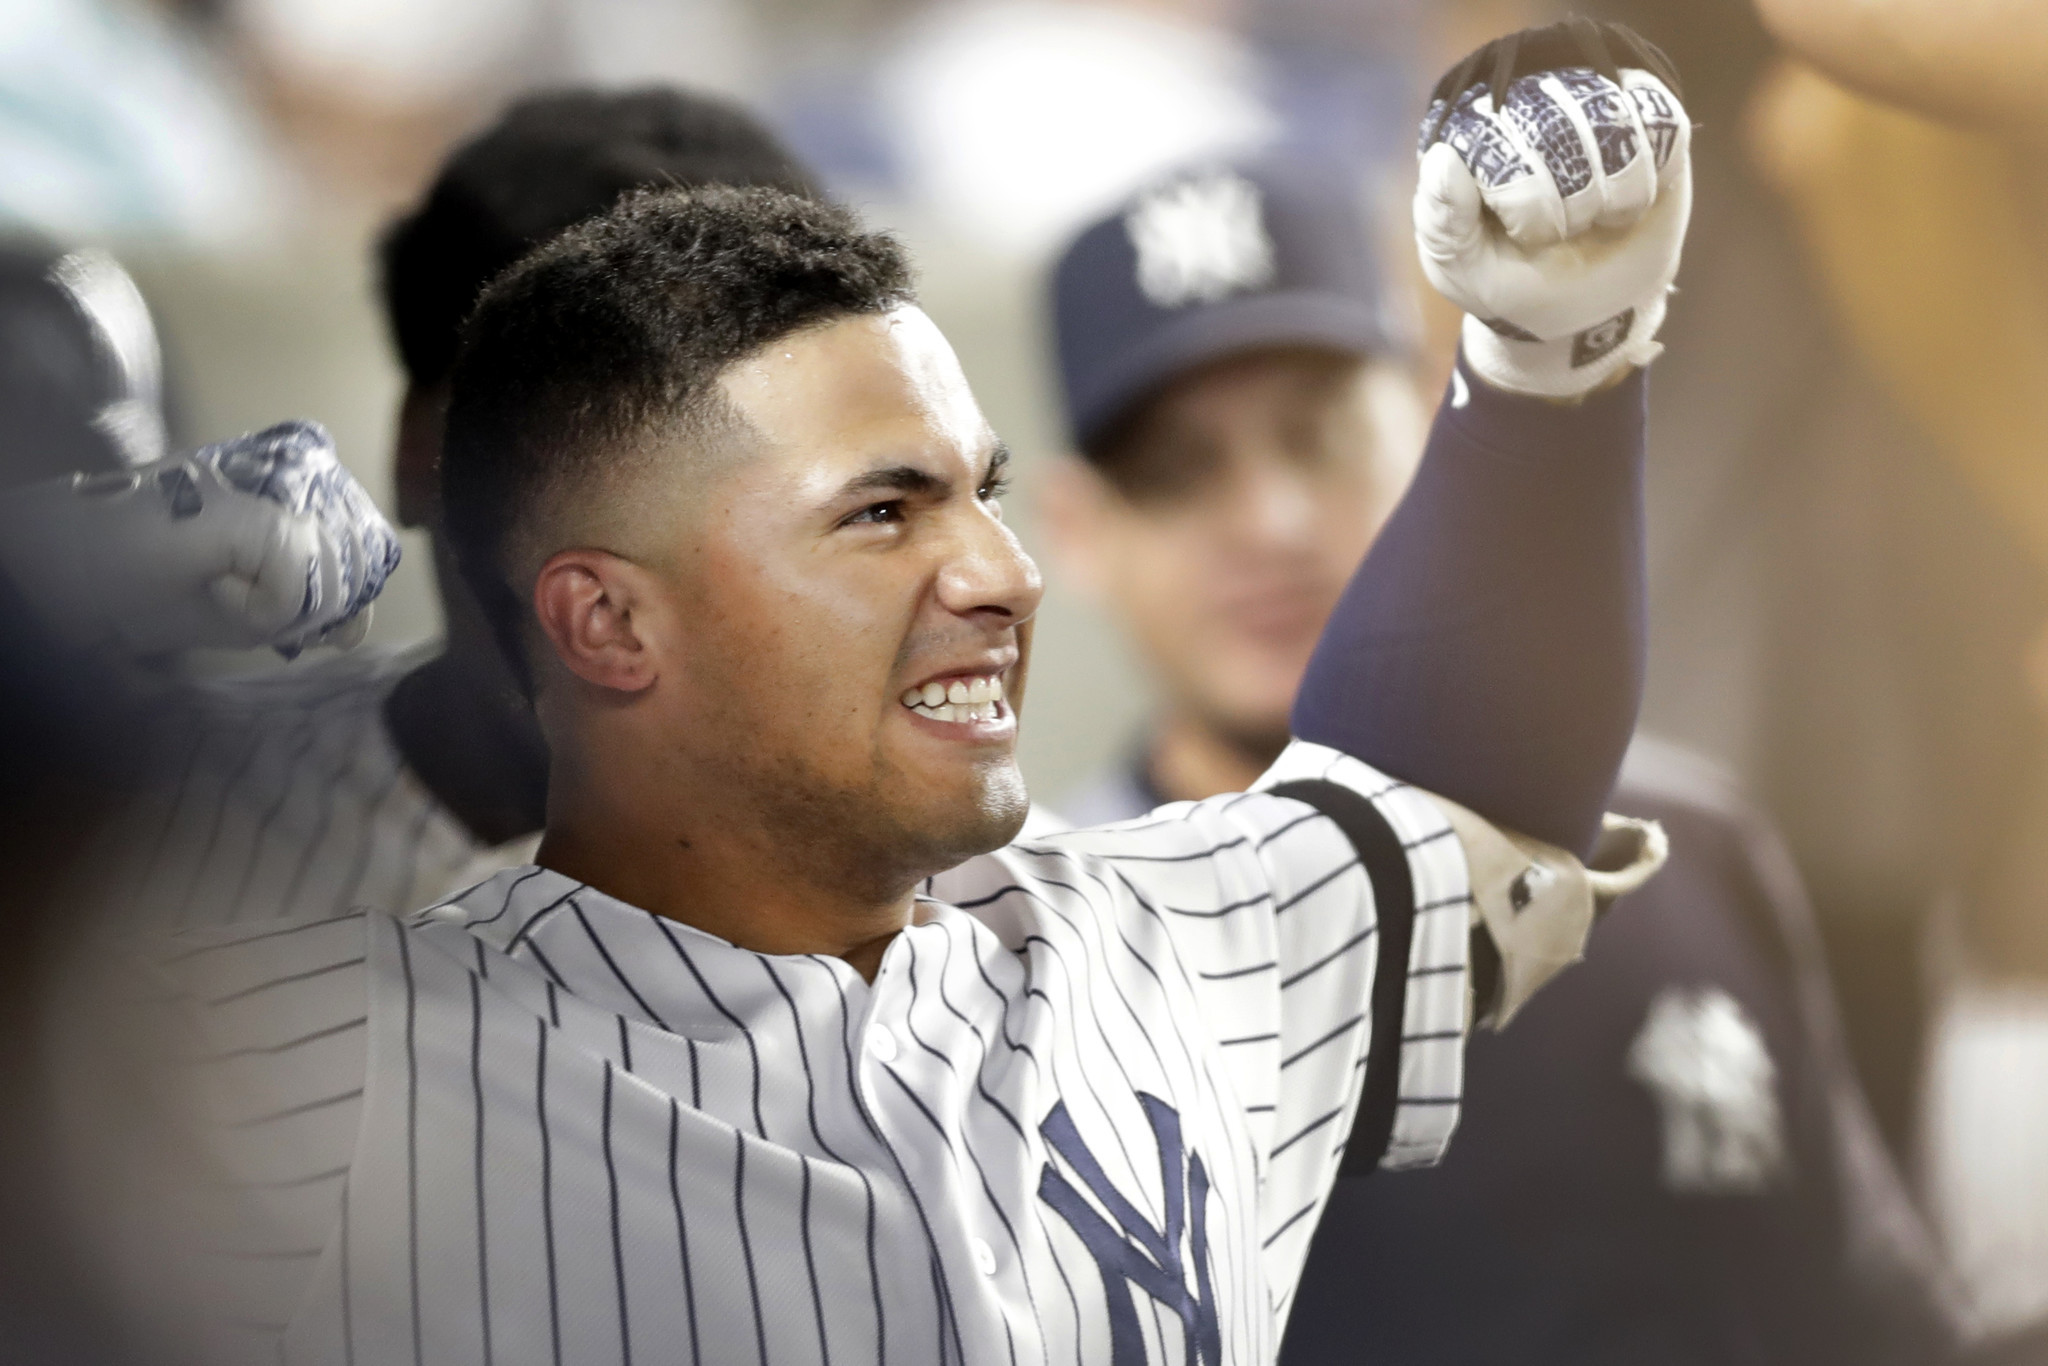 Gleyber Torres isn't filling Derek Jeter's shoes. He's just playing his spot